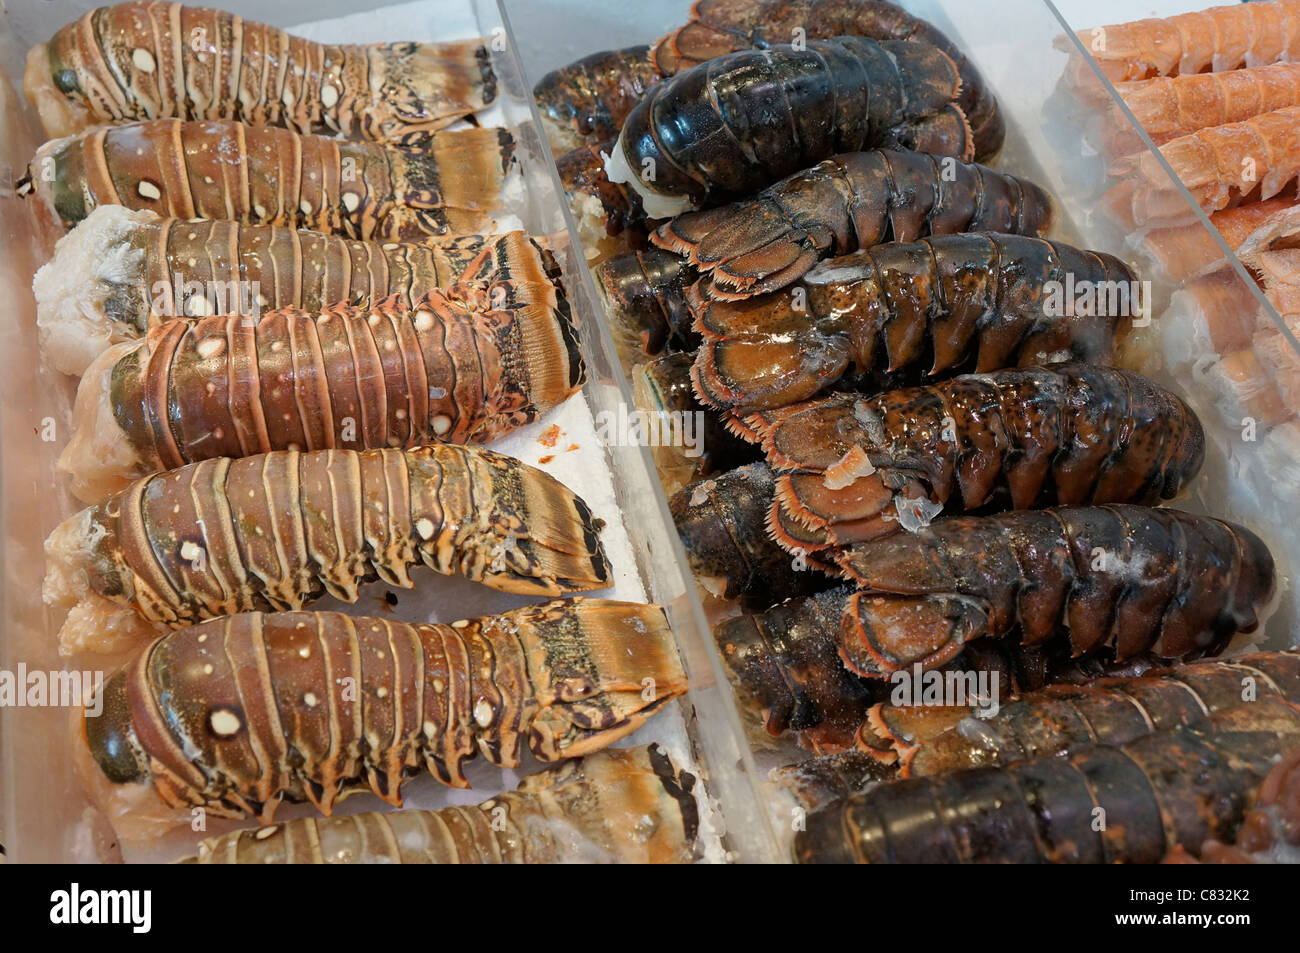 Lobster Tails in Freezer Section of Food Store - Stock Image